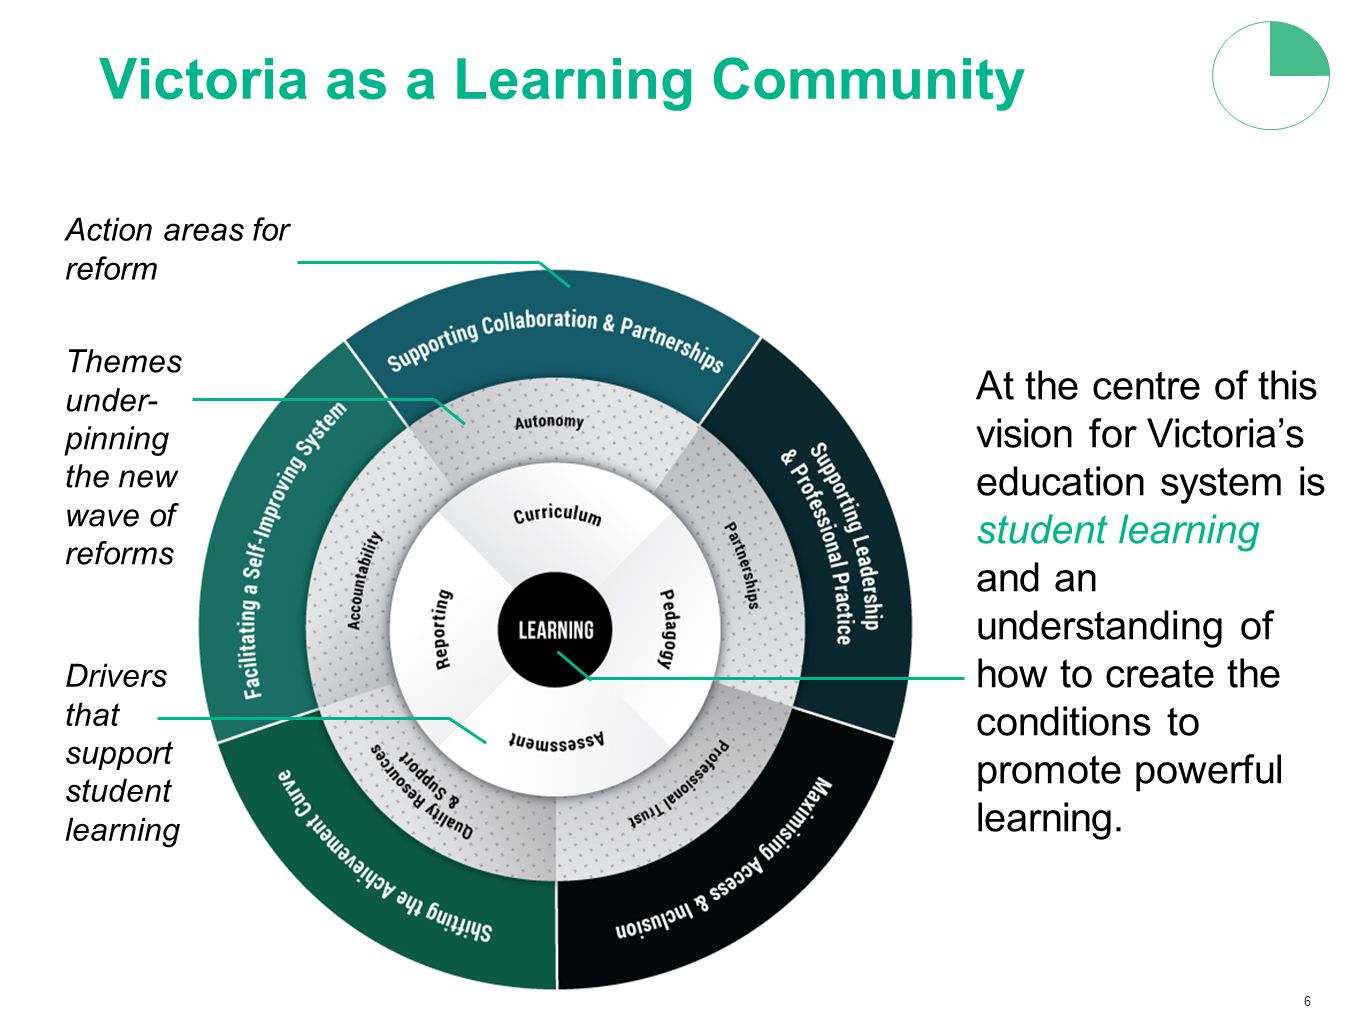 6 Victoria as a Learning Community At the centre of this vision for Victoria's education system is student learning and an understanding of how to create the conditions to promote powerful learning.